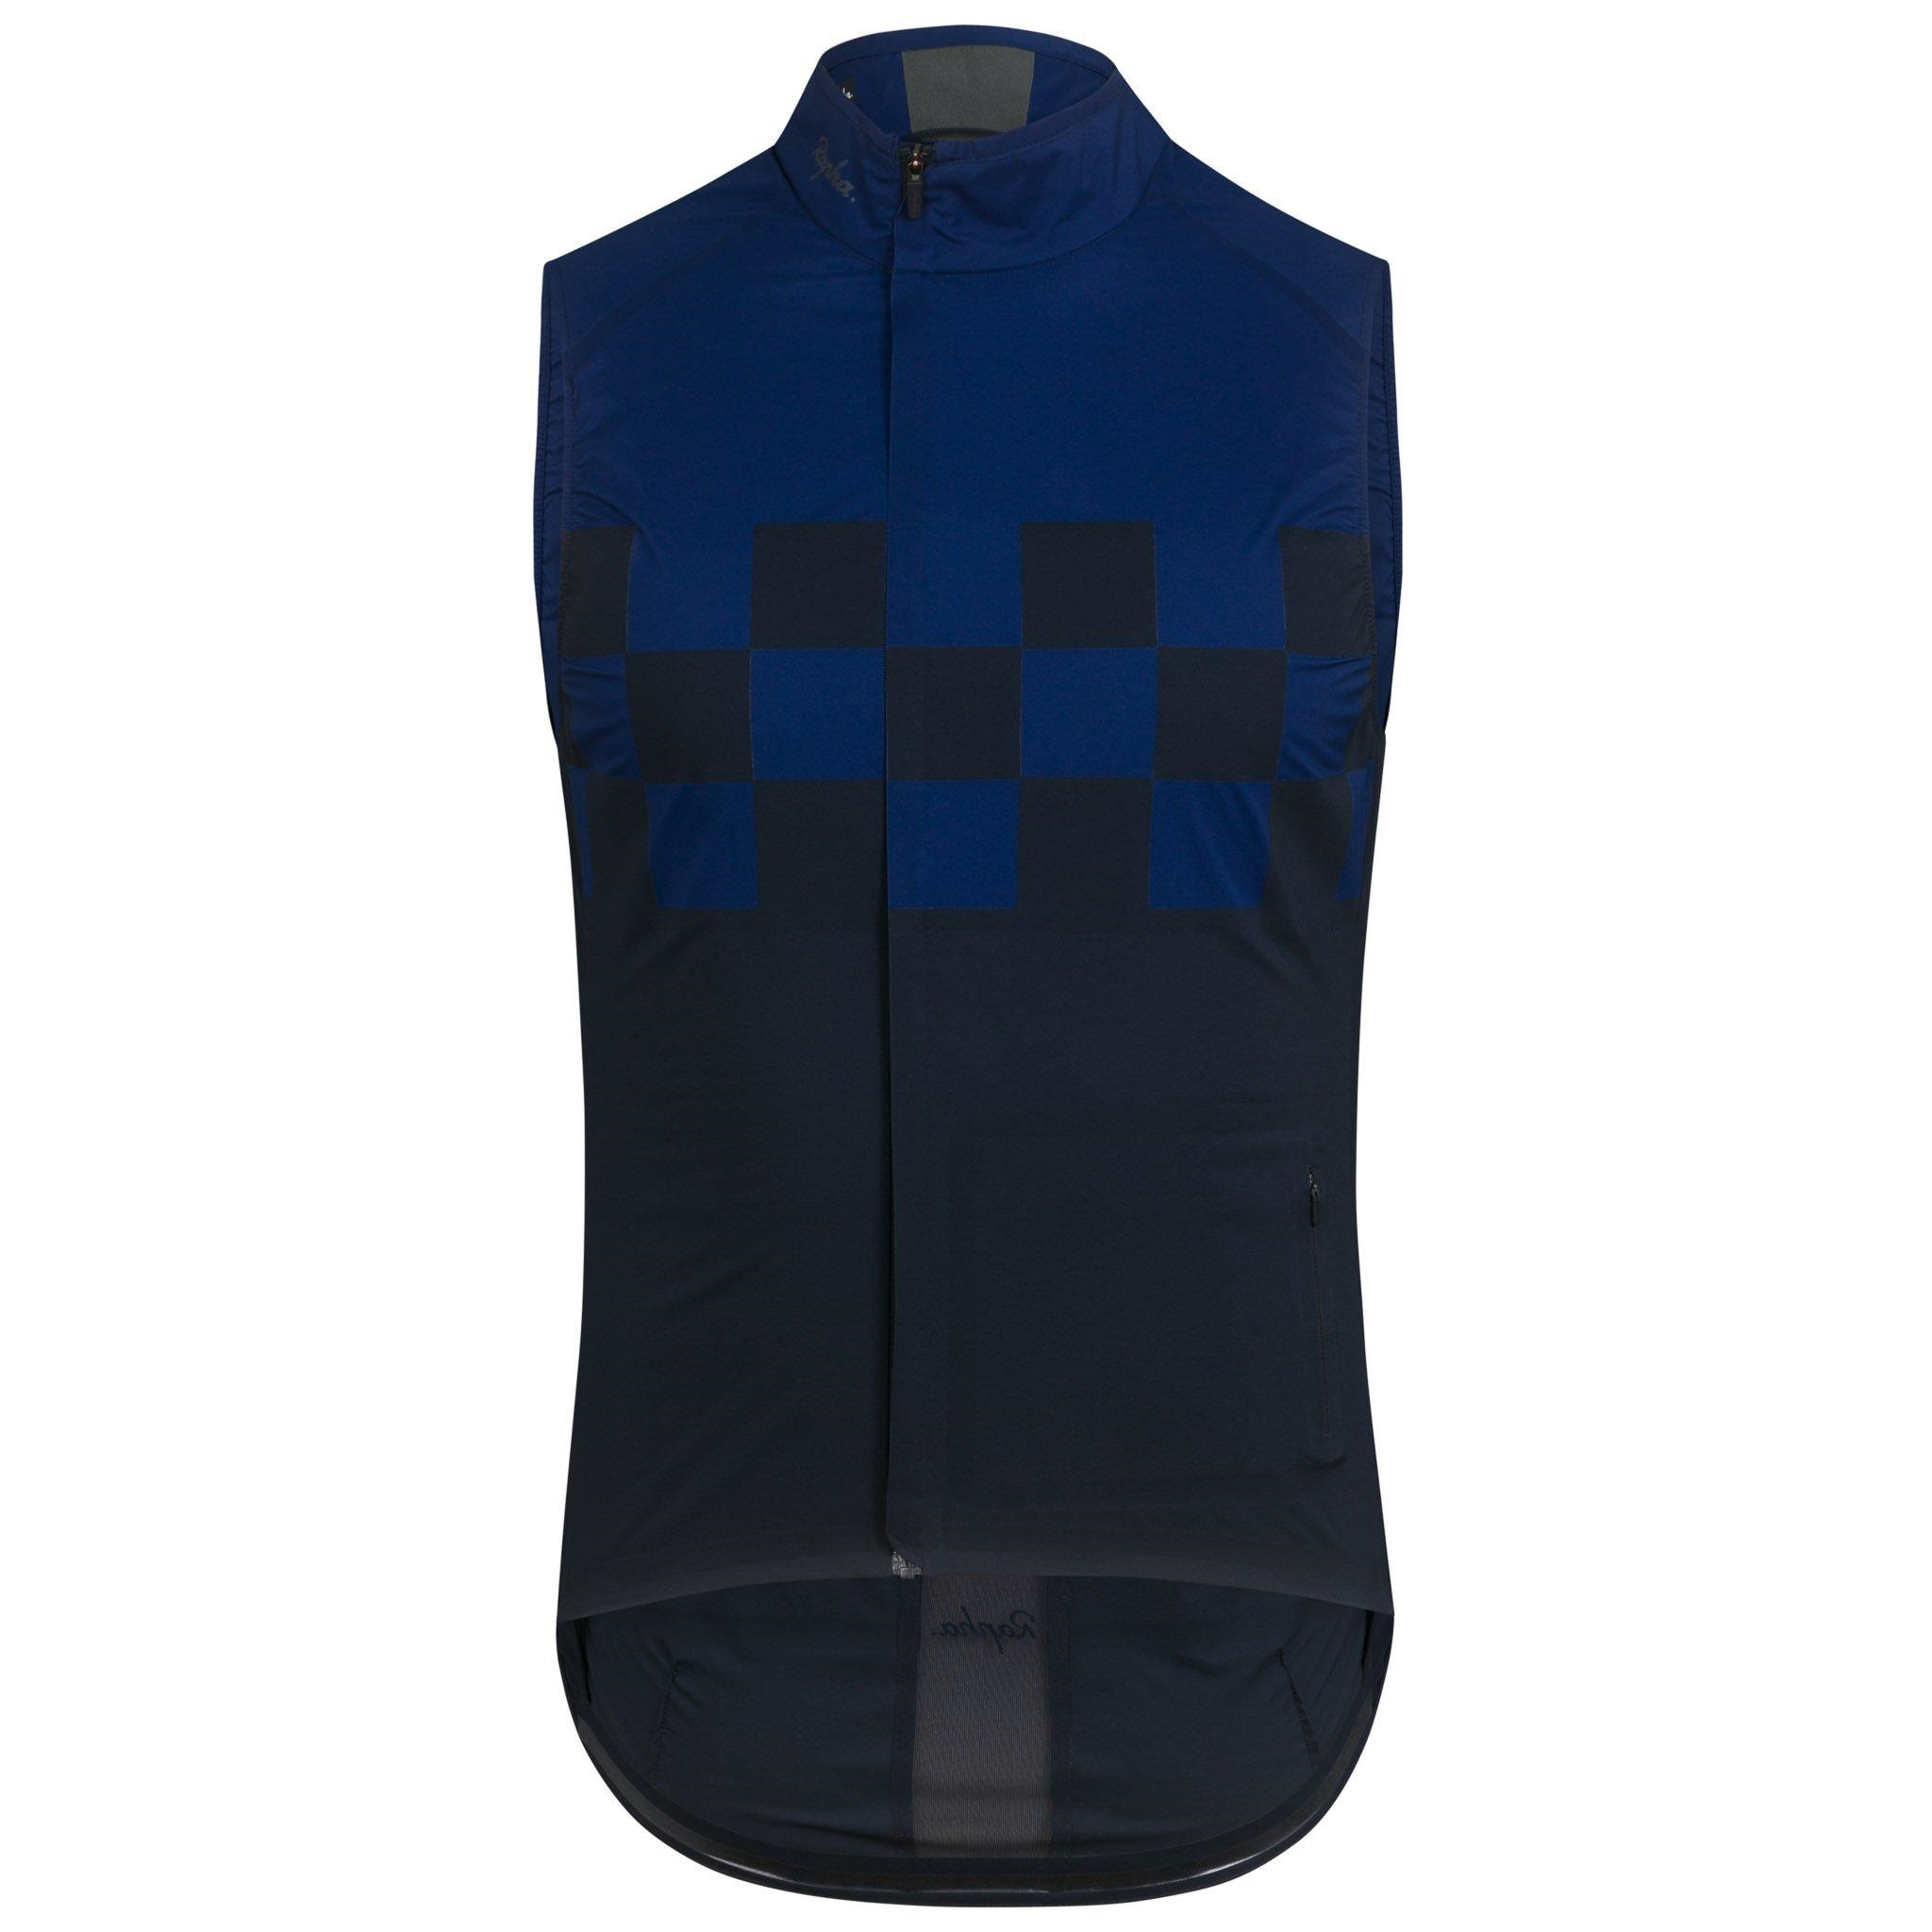 Rapha Classic Wind Check Gilet | Vests